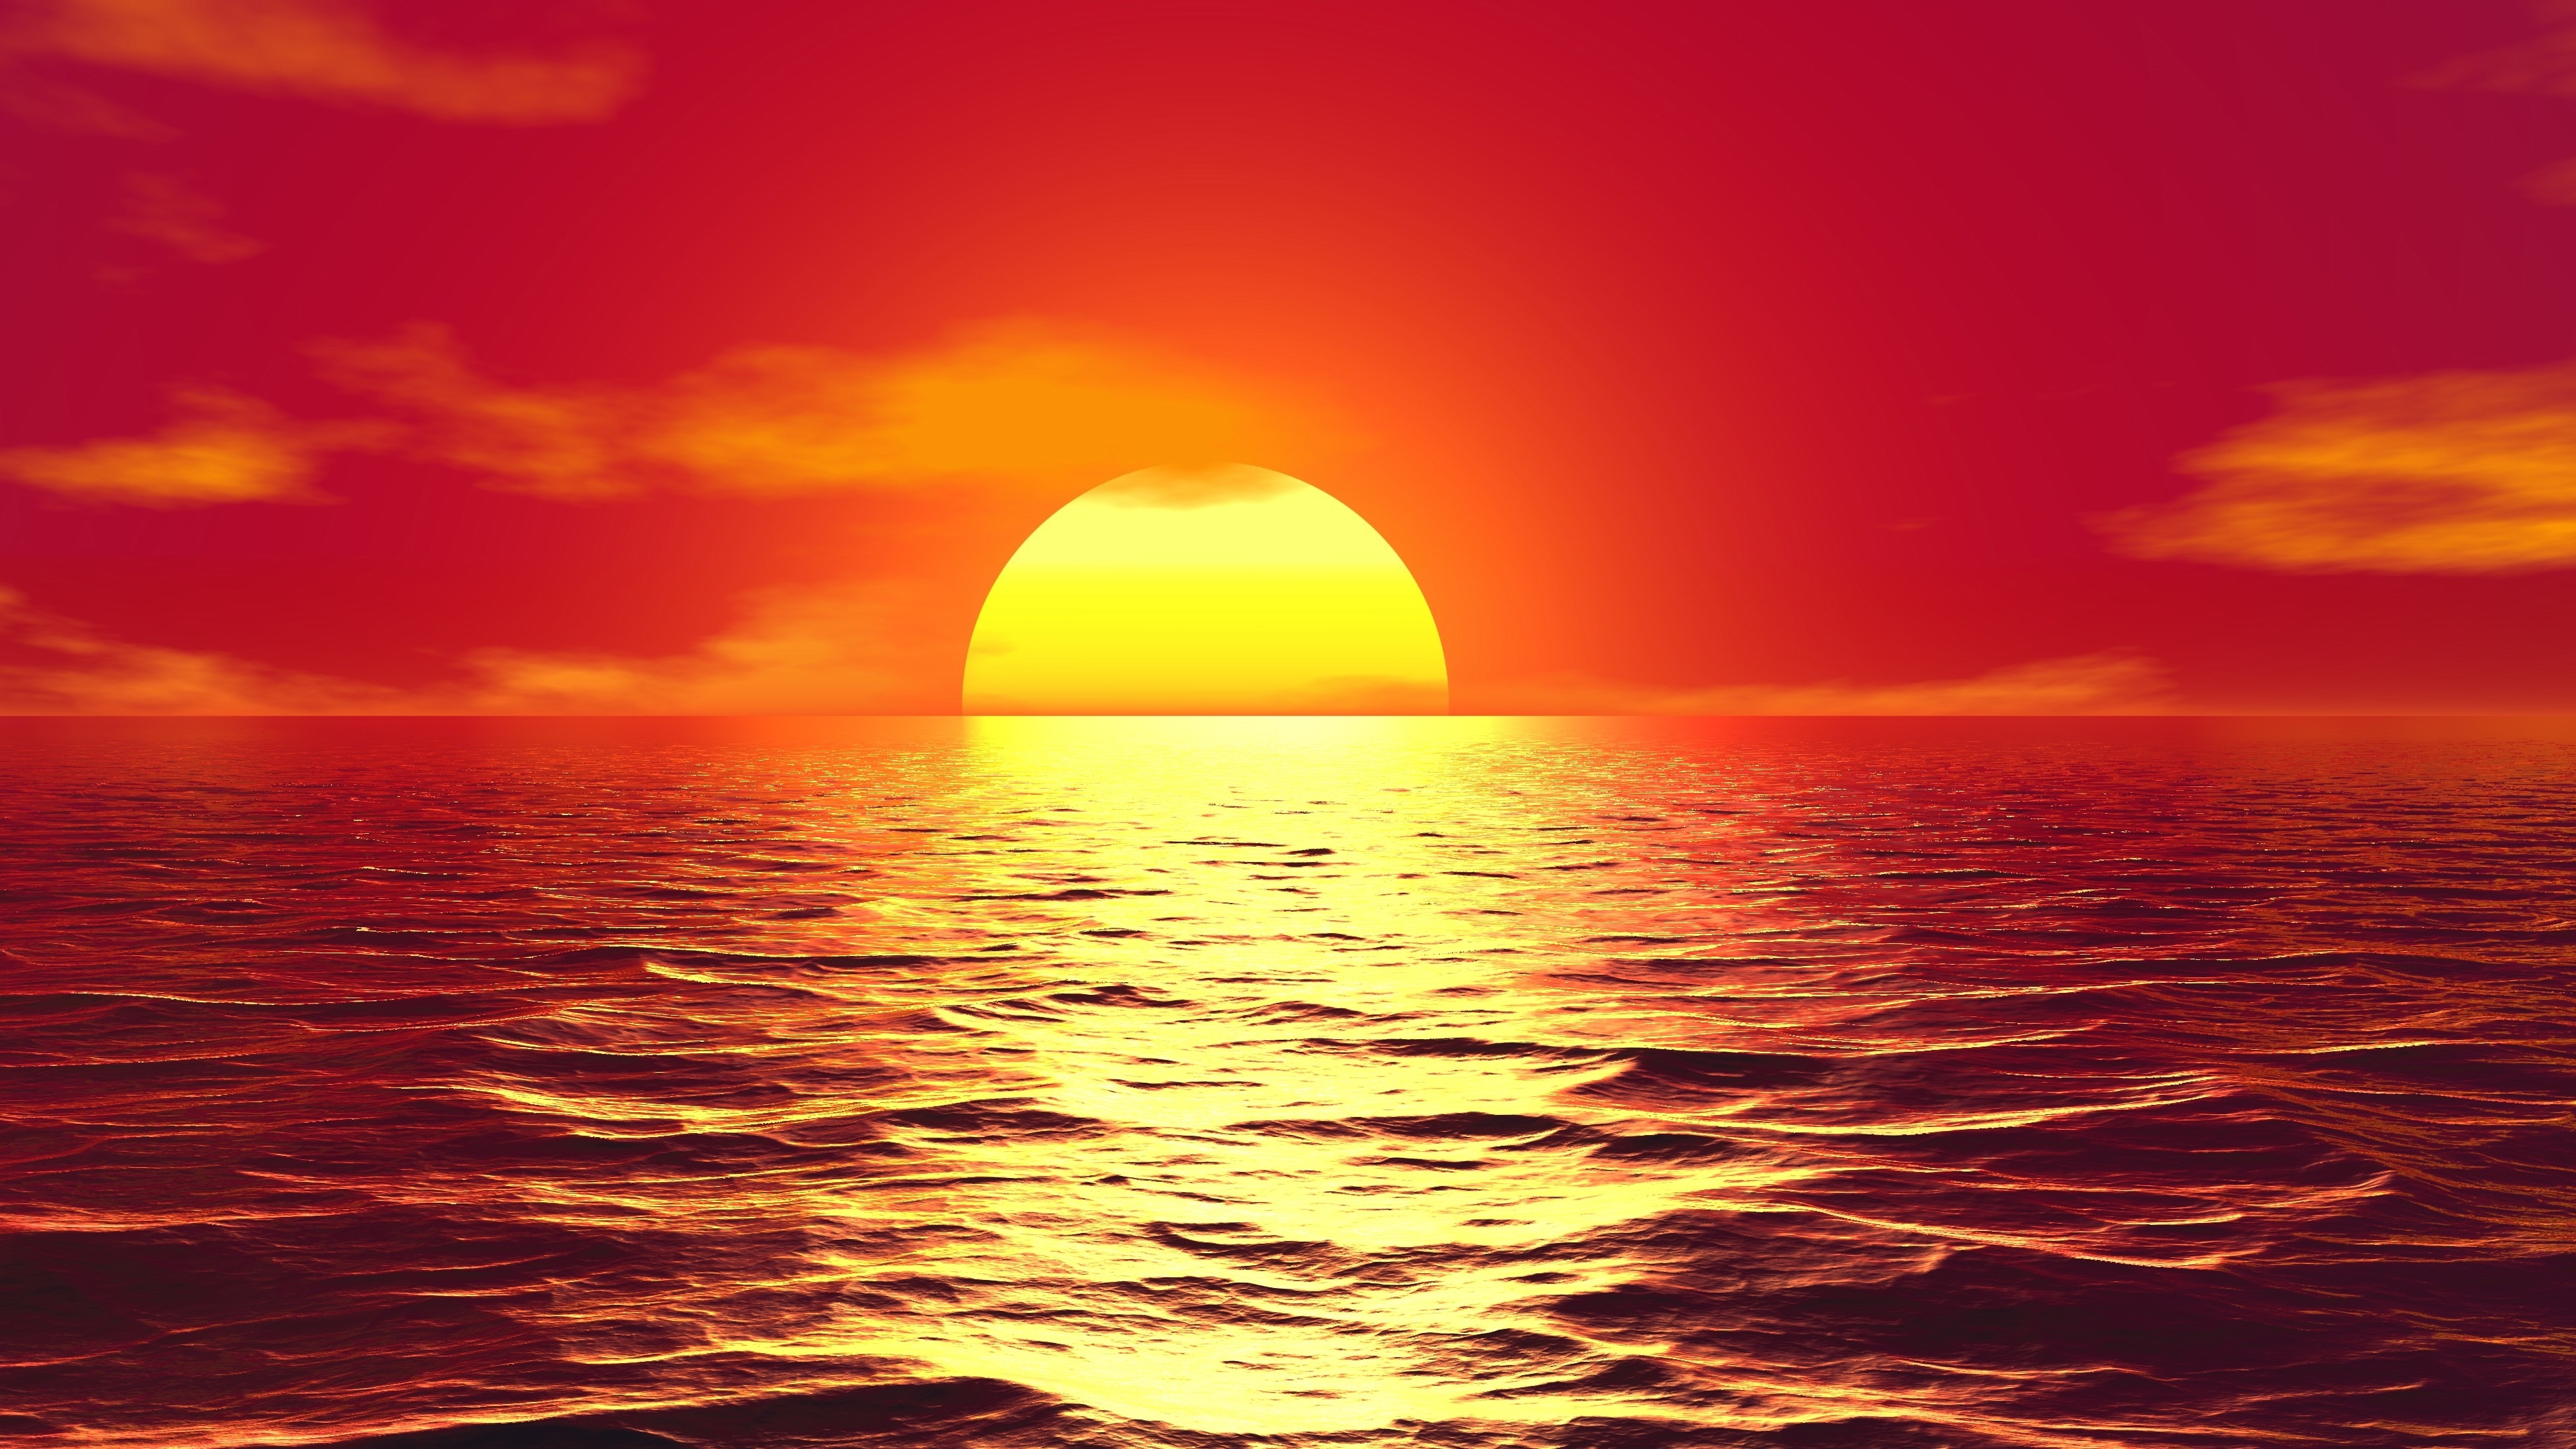 Beautiful Sunset 4k Ultra Hd Wallpaper Background Image 3840x2160 Id 995494 Wallpaper Abyss